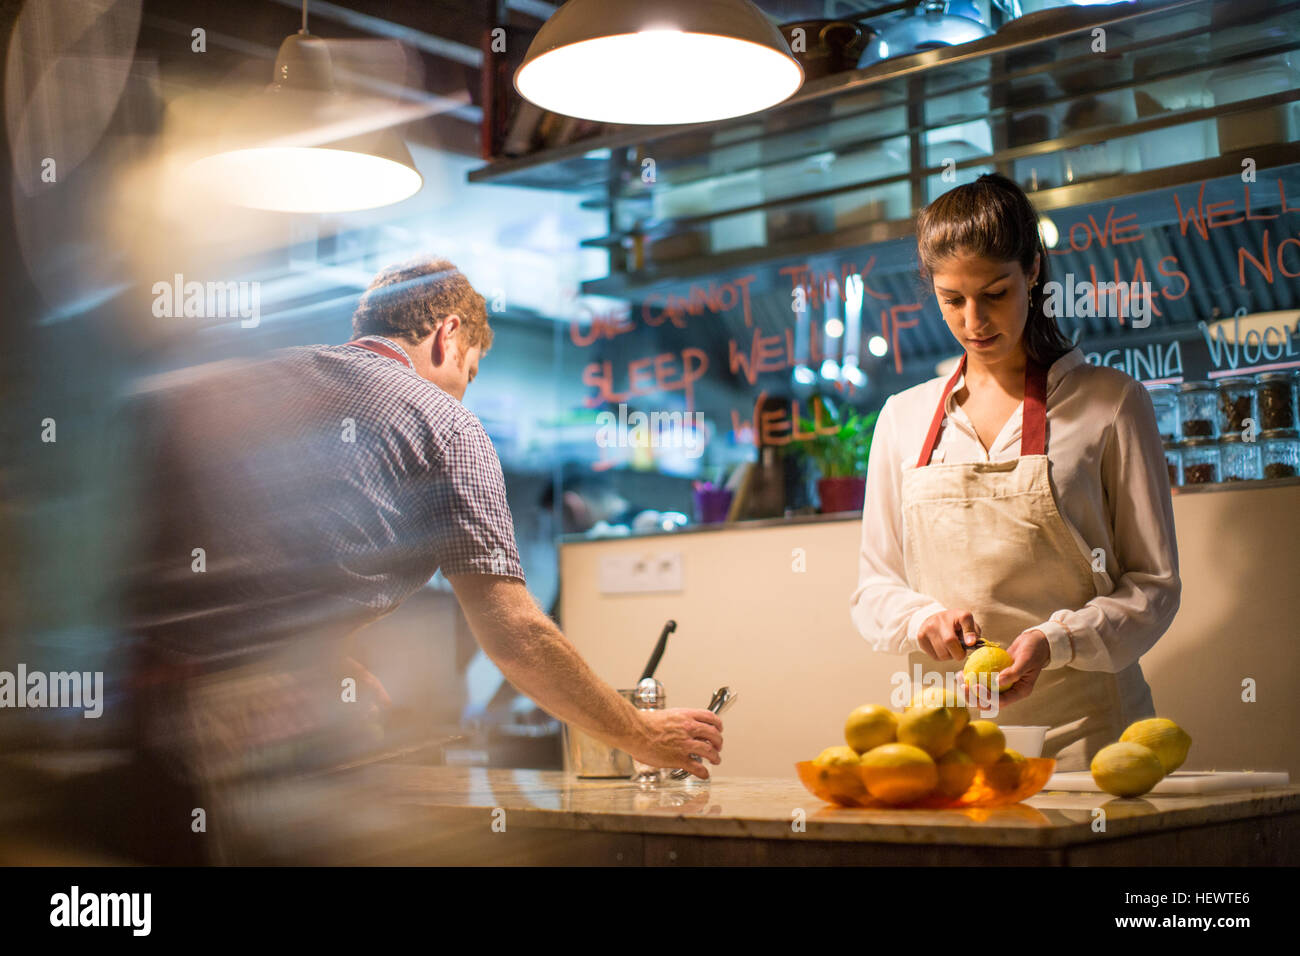 Restaurant owners working in kitchen - Stock Image